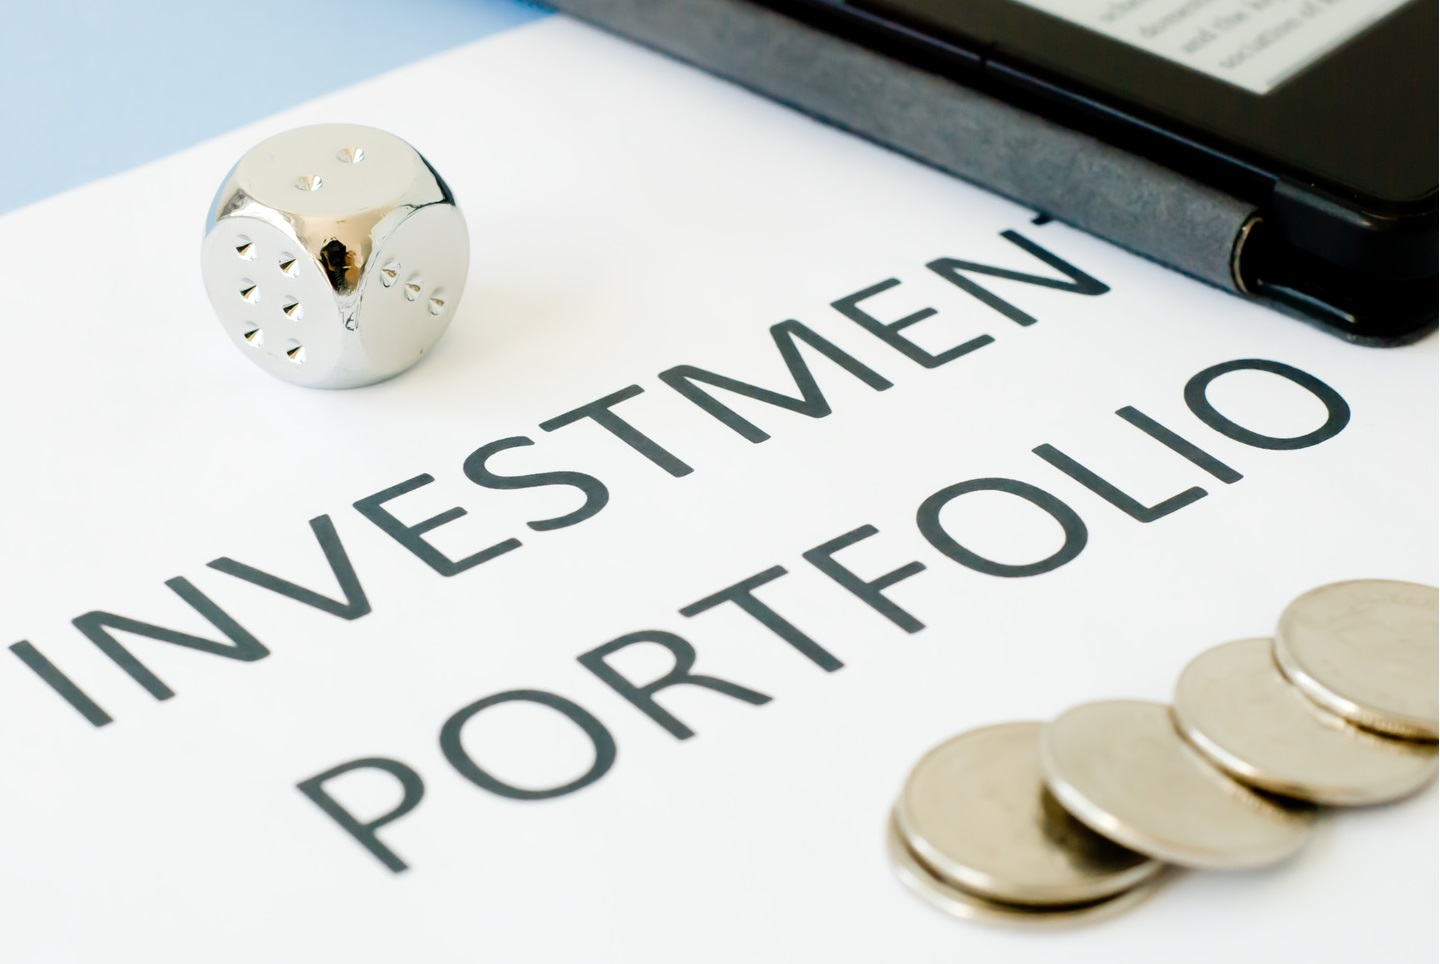 Portfolio-Investment-As-a-way-to-reduce-risks.jpg